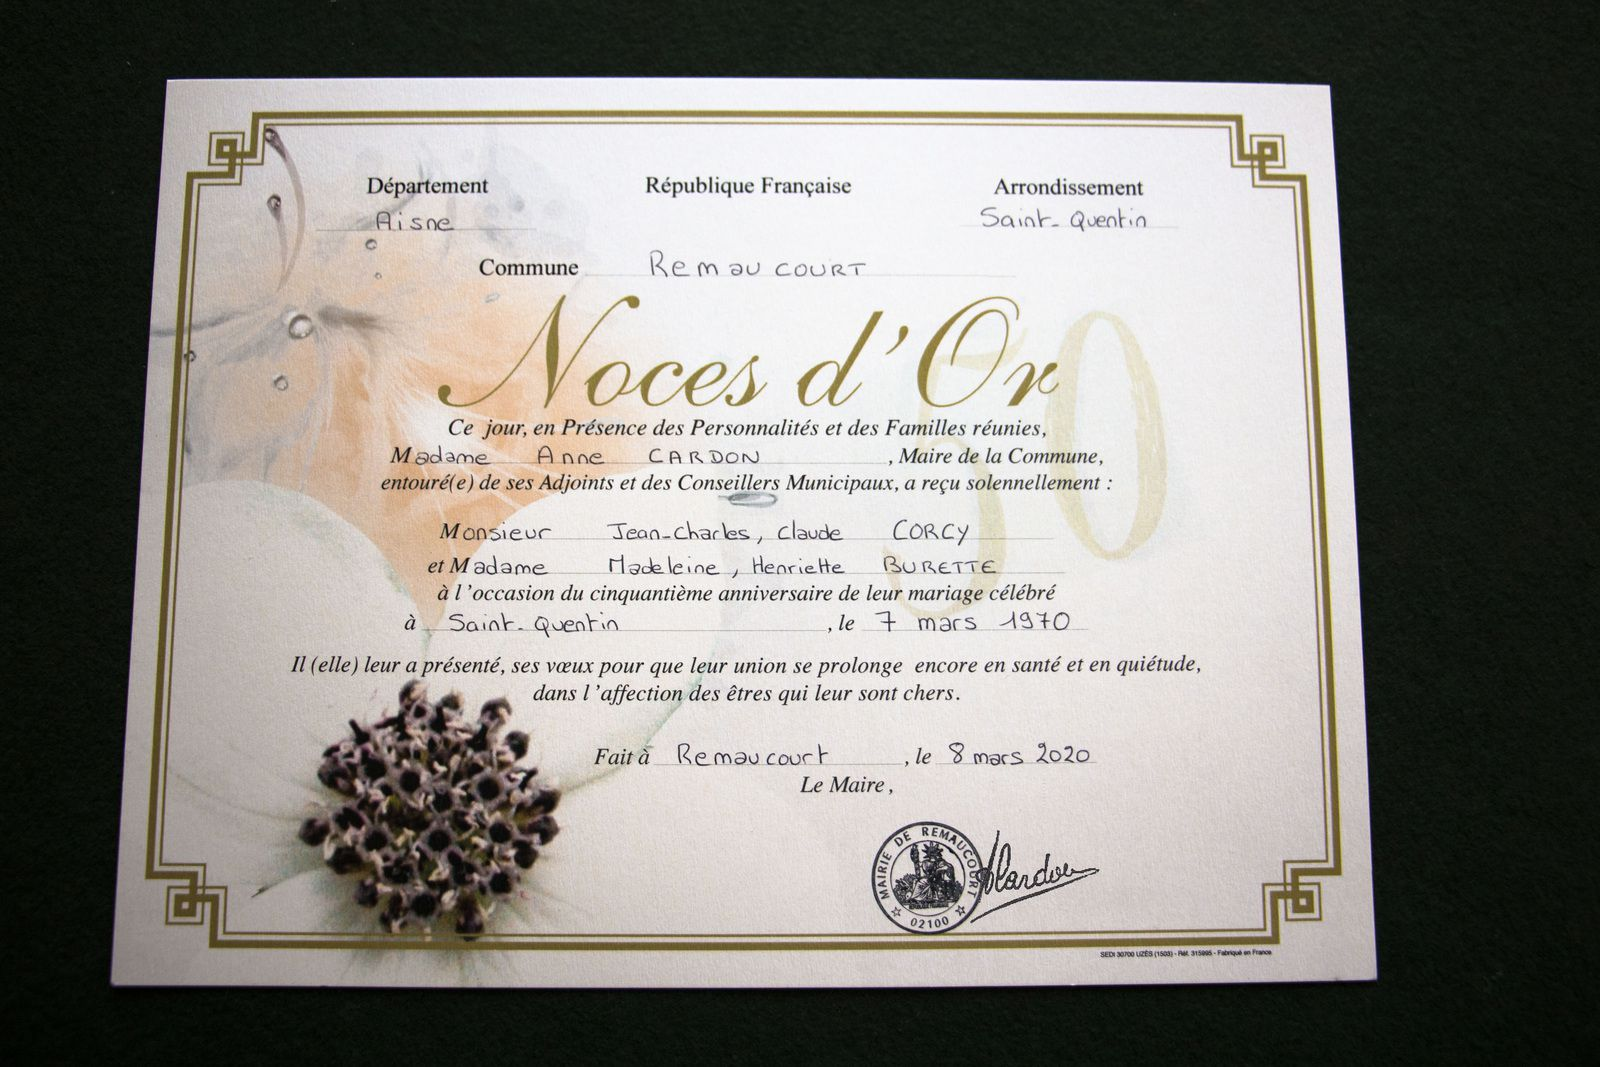 Célébration de Noces d'Or à Remaucourt.